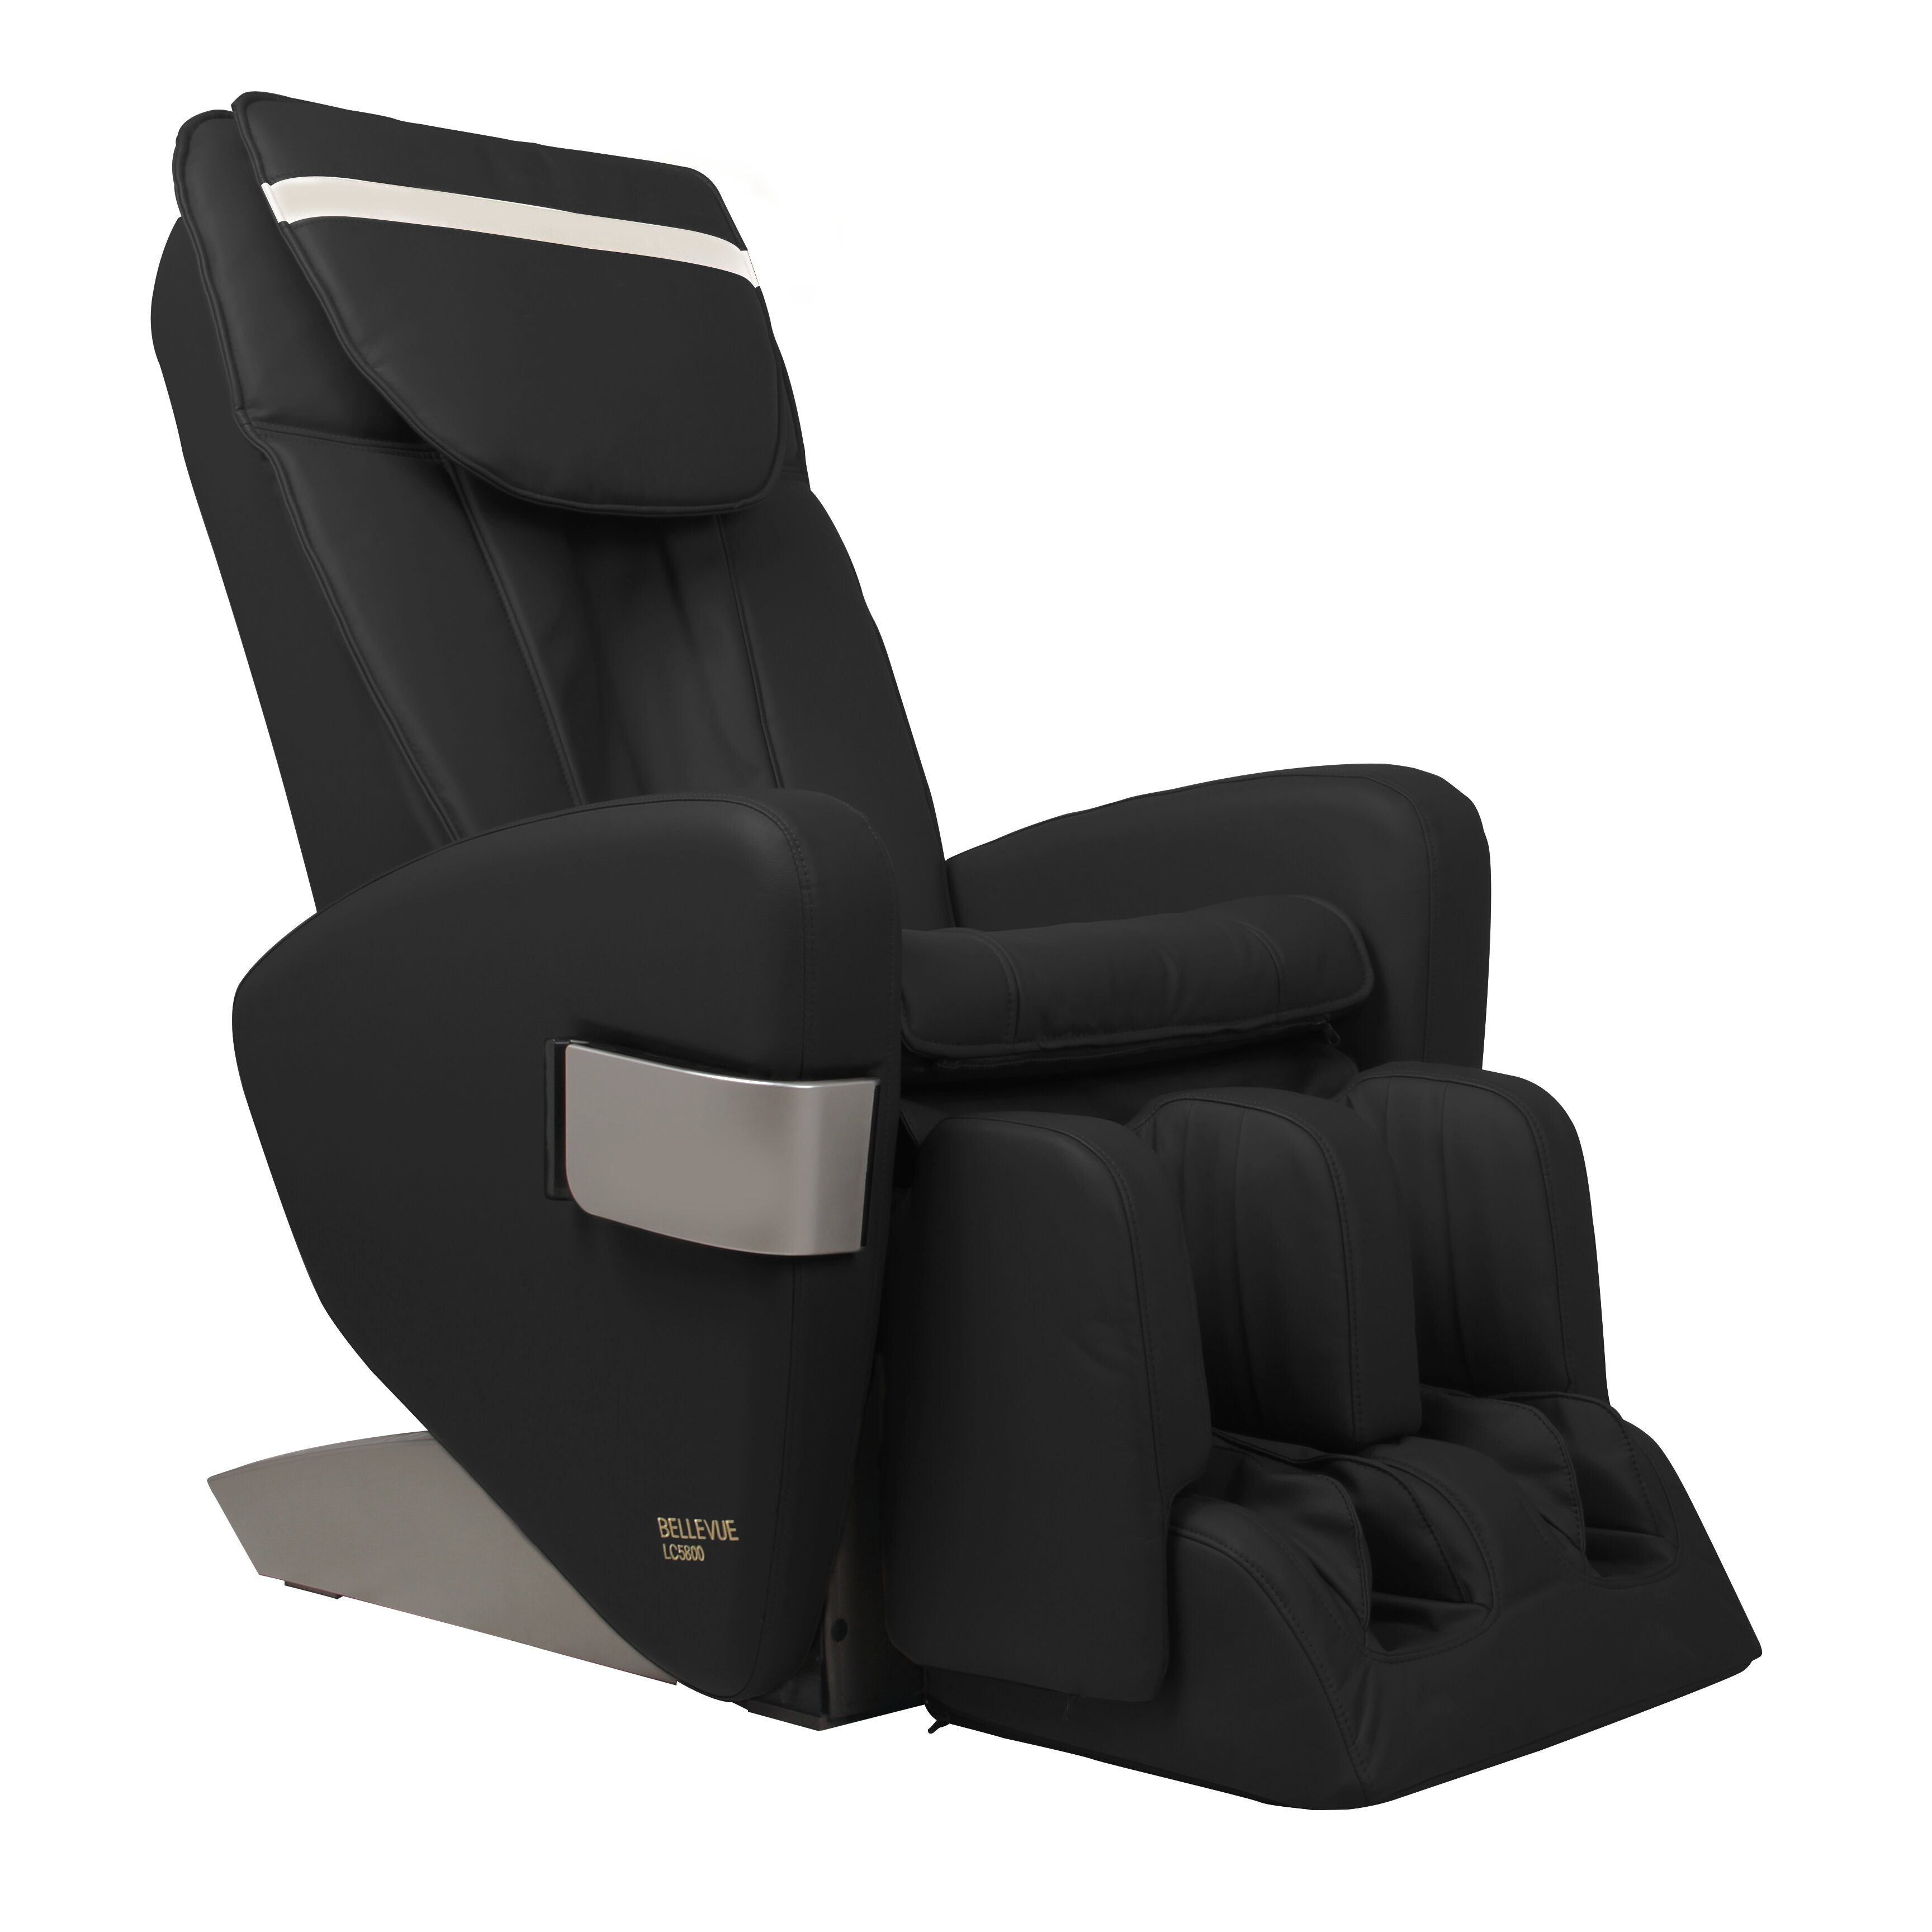 Dynamic massage chairs bellevue edition zero gravity for Living room zero gravity chair